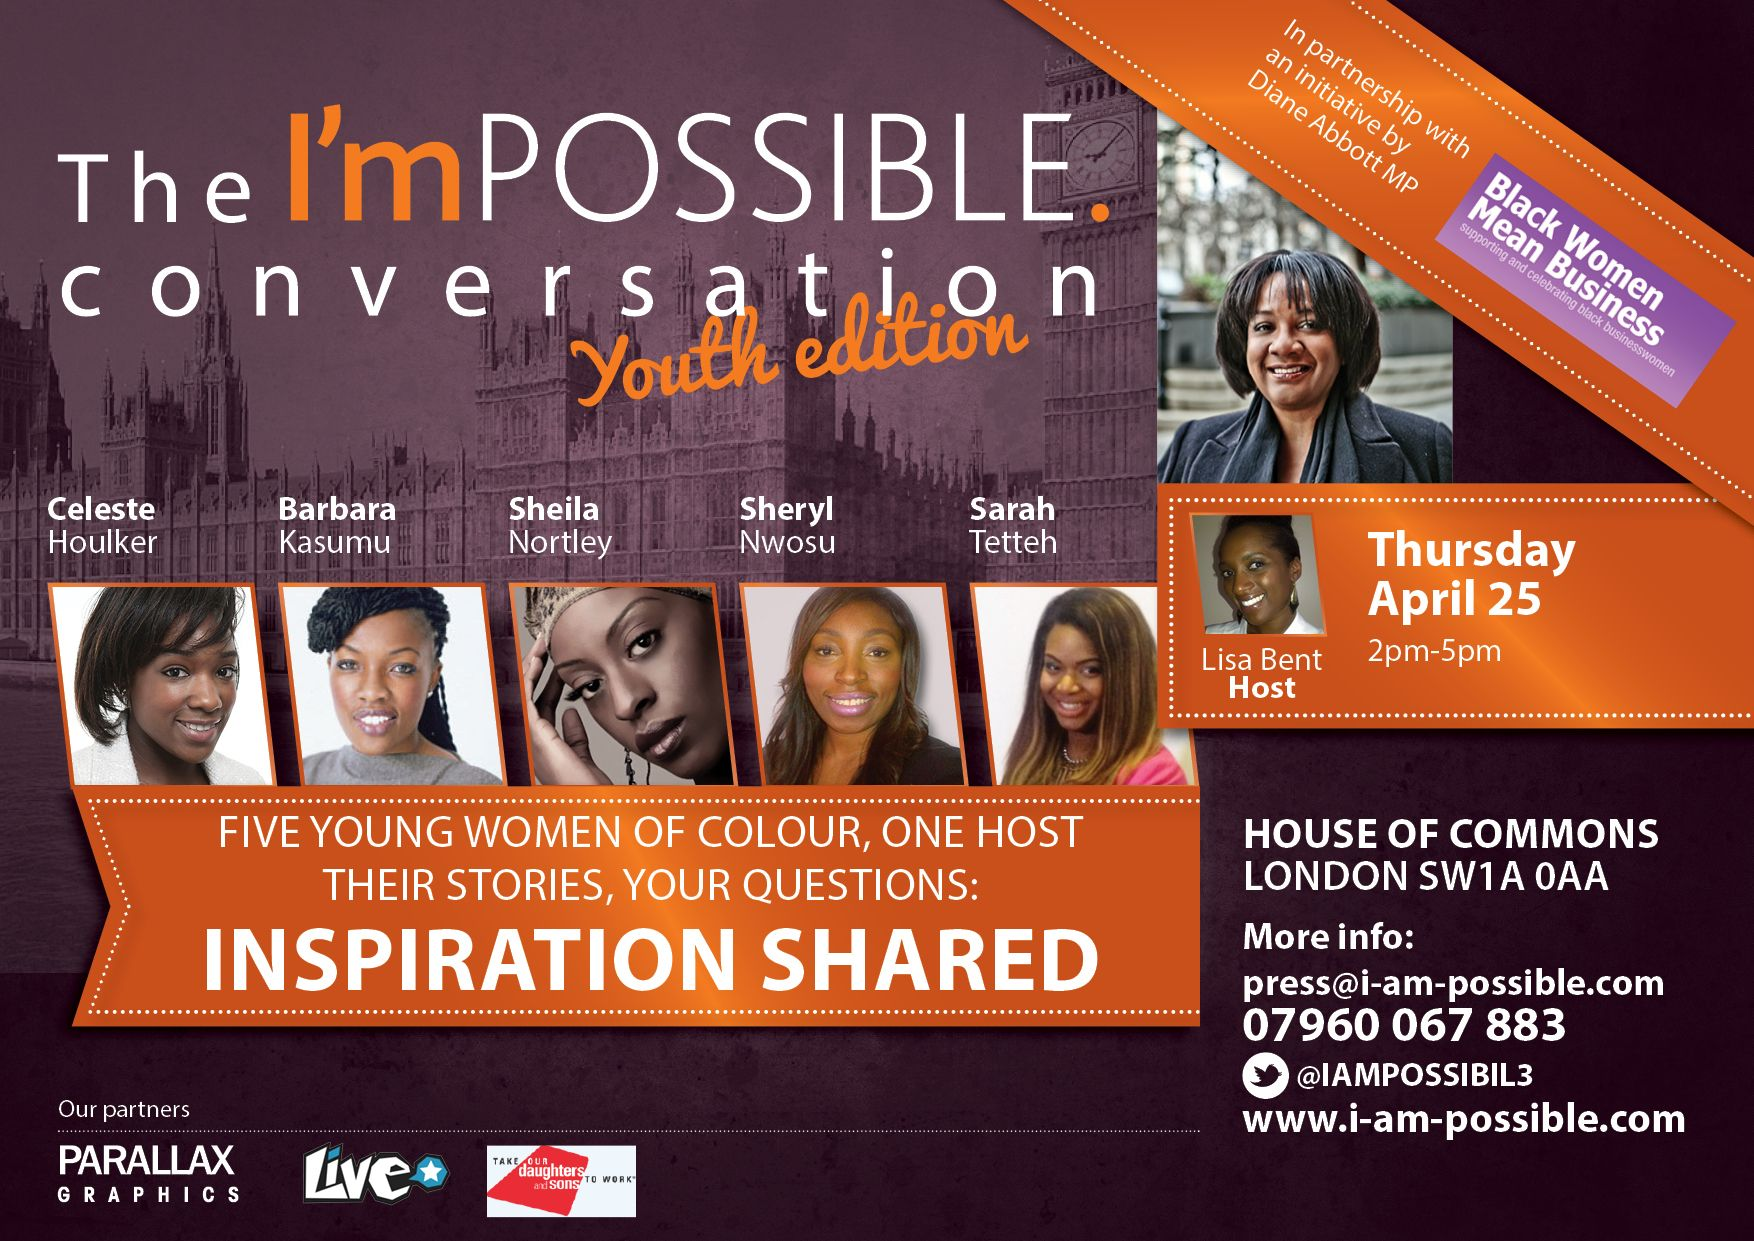 The historic youth edition of the I'mPOSSIBLE conversation which took place on April 25 at the House of Commons in partnership with Diane Abbott MPs 'Black Women Mean Business' and the Take Our Daughters and Sons to Work foundation